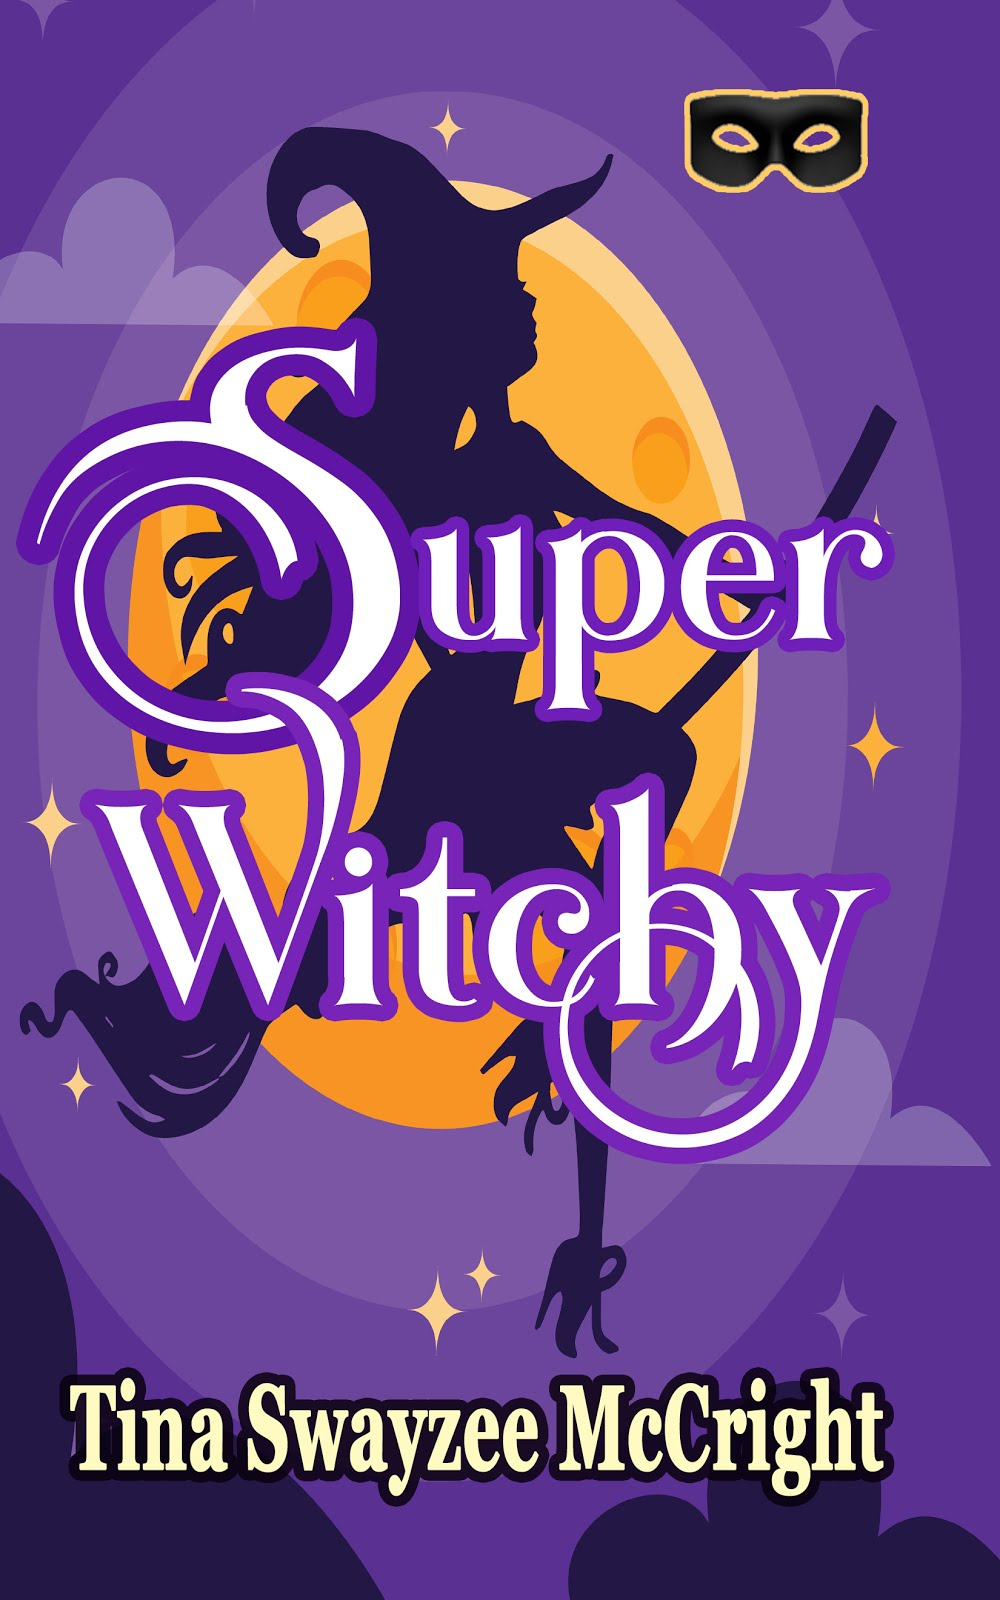 Super Witchy!